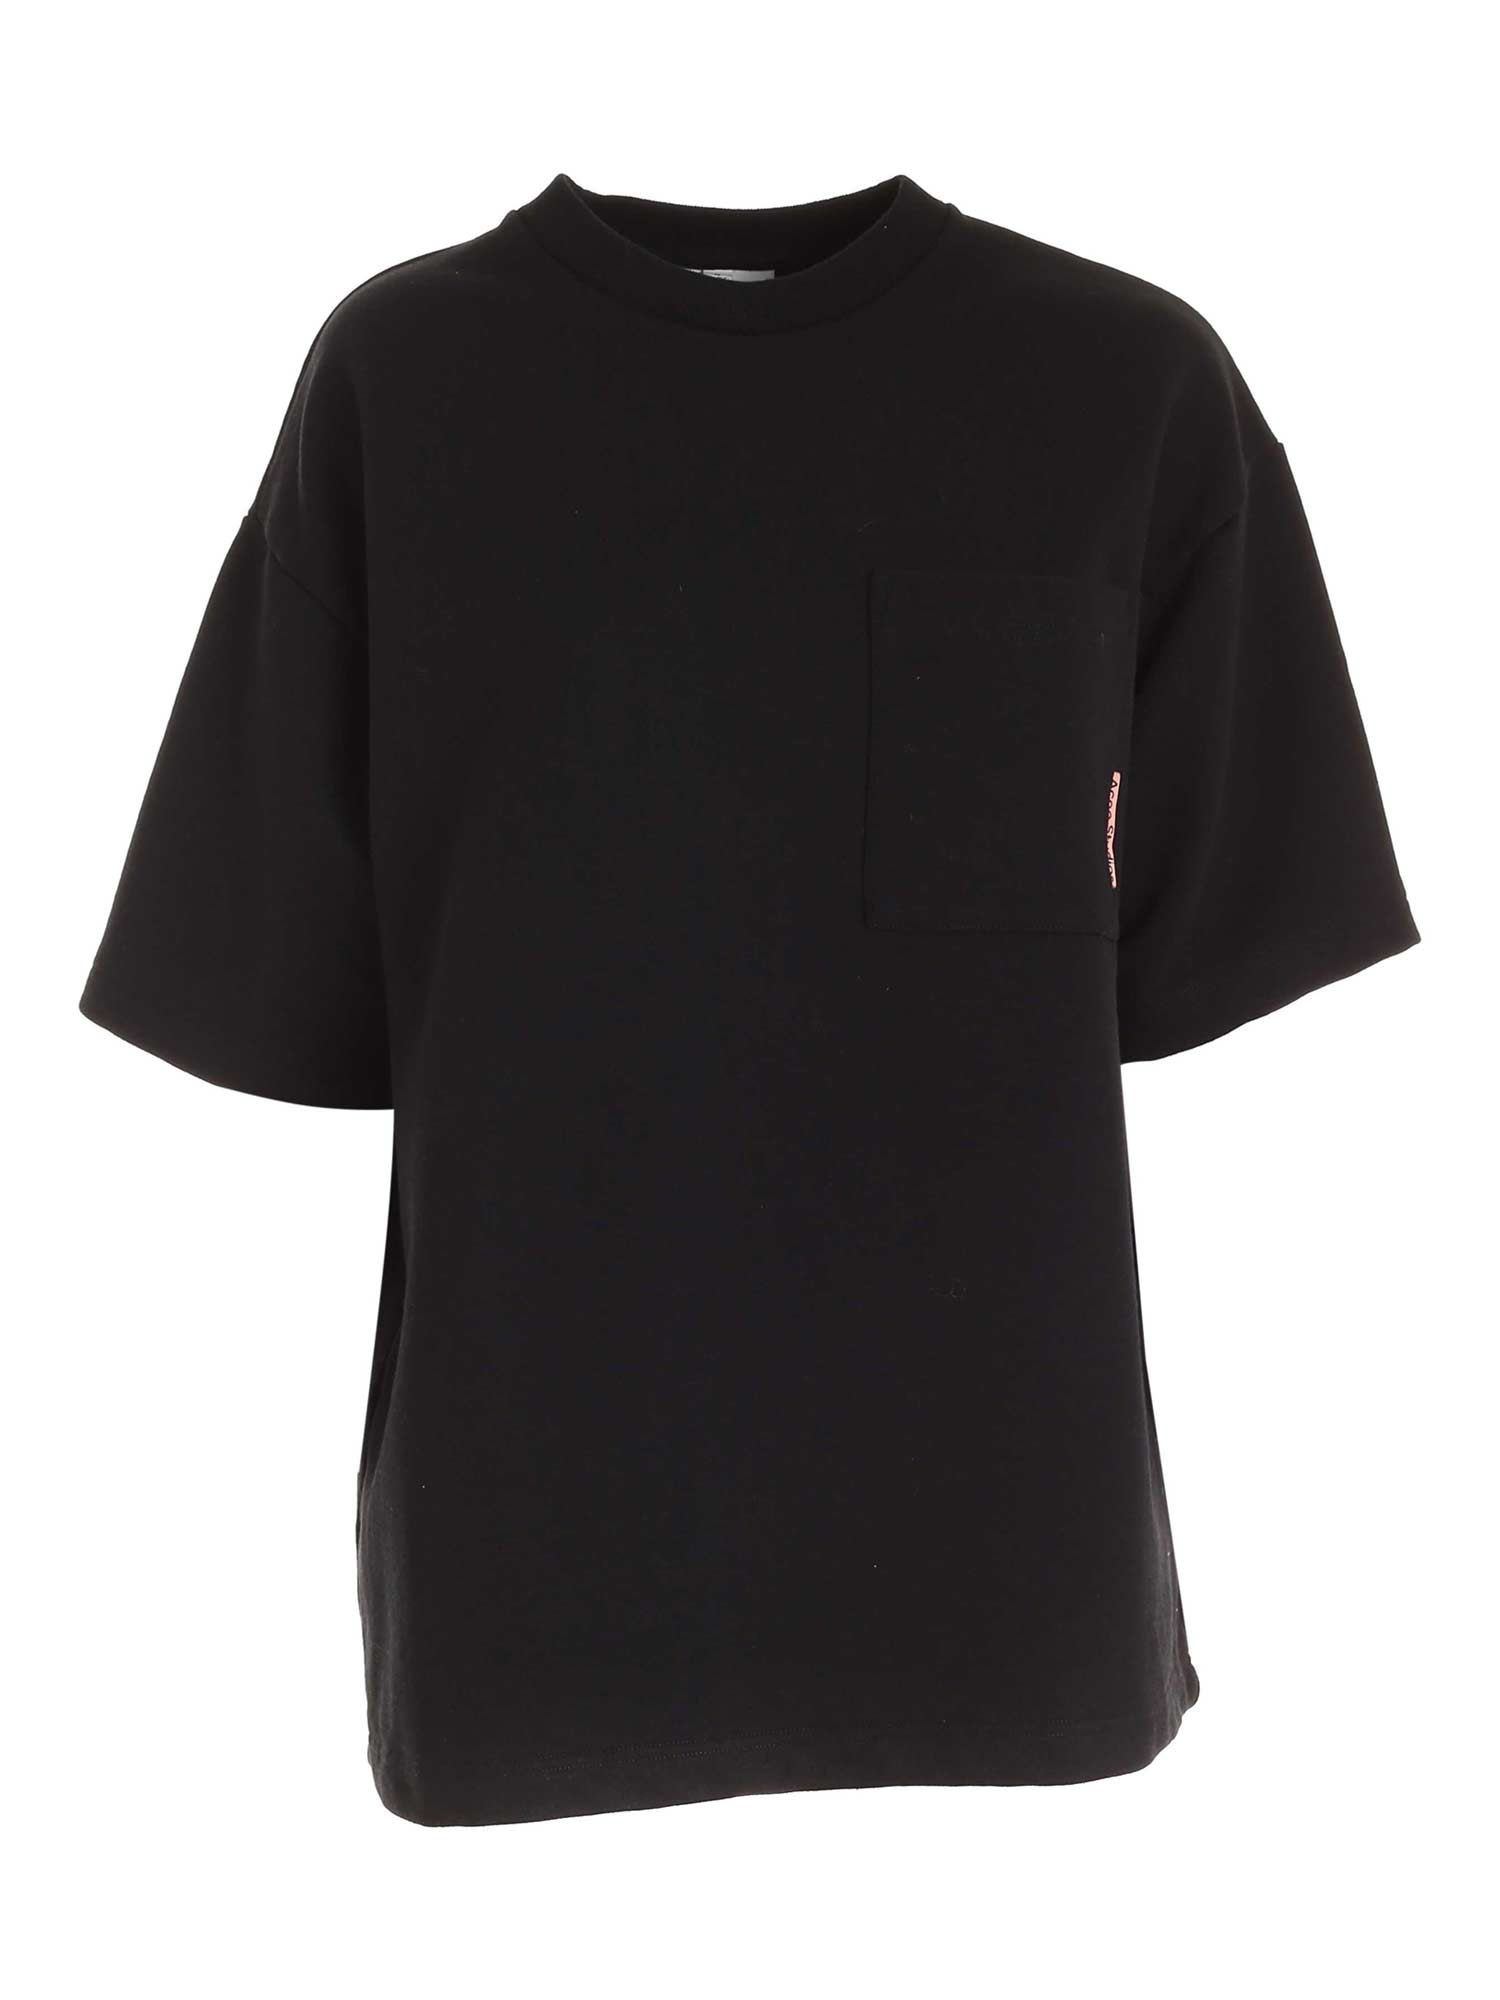 Acne Studios OVERSIZE SHORT SLEEVES SWEATSHIRT IN BLACK